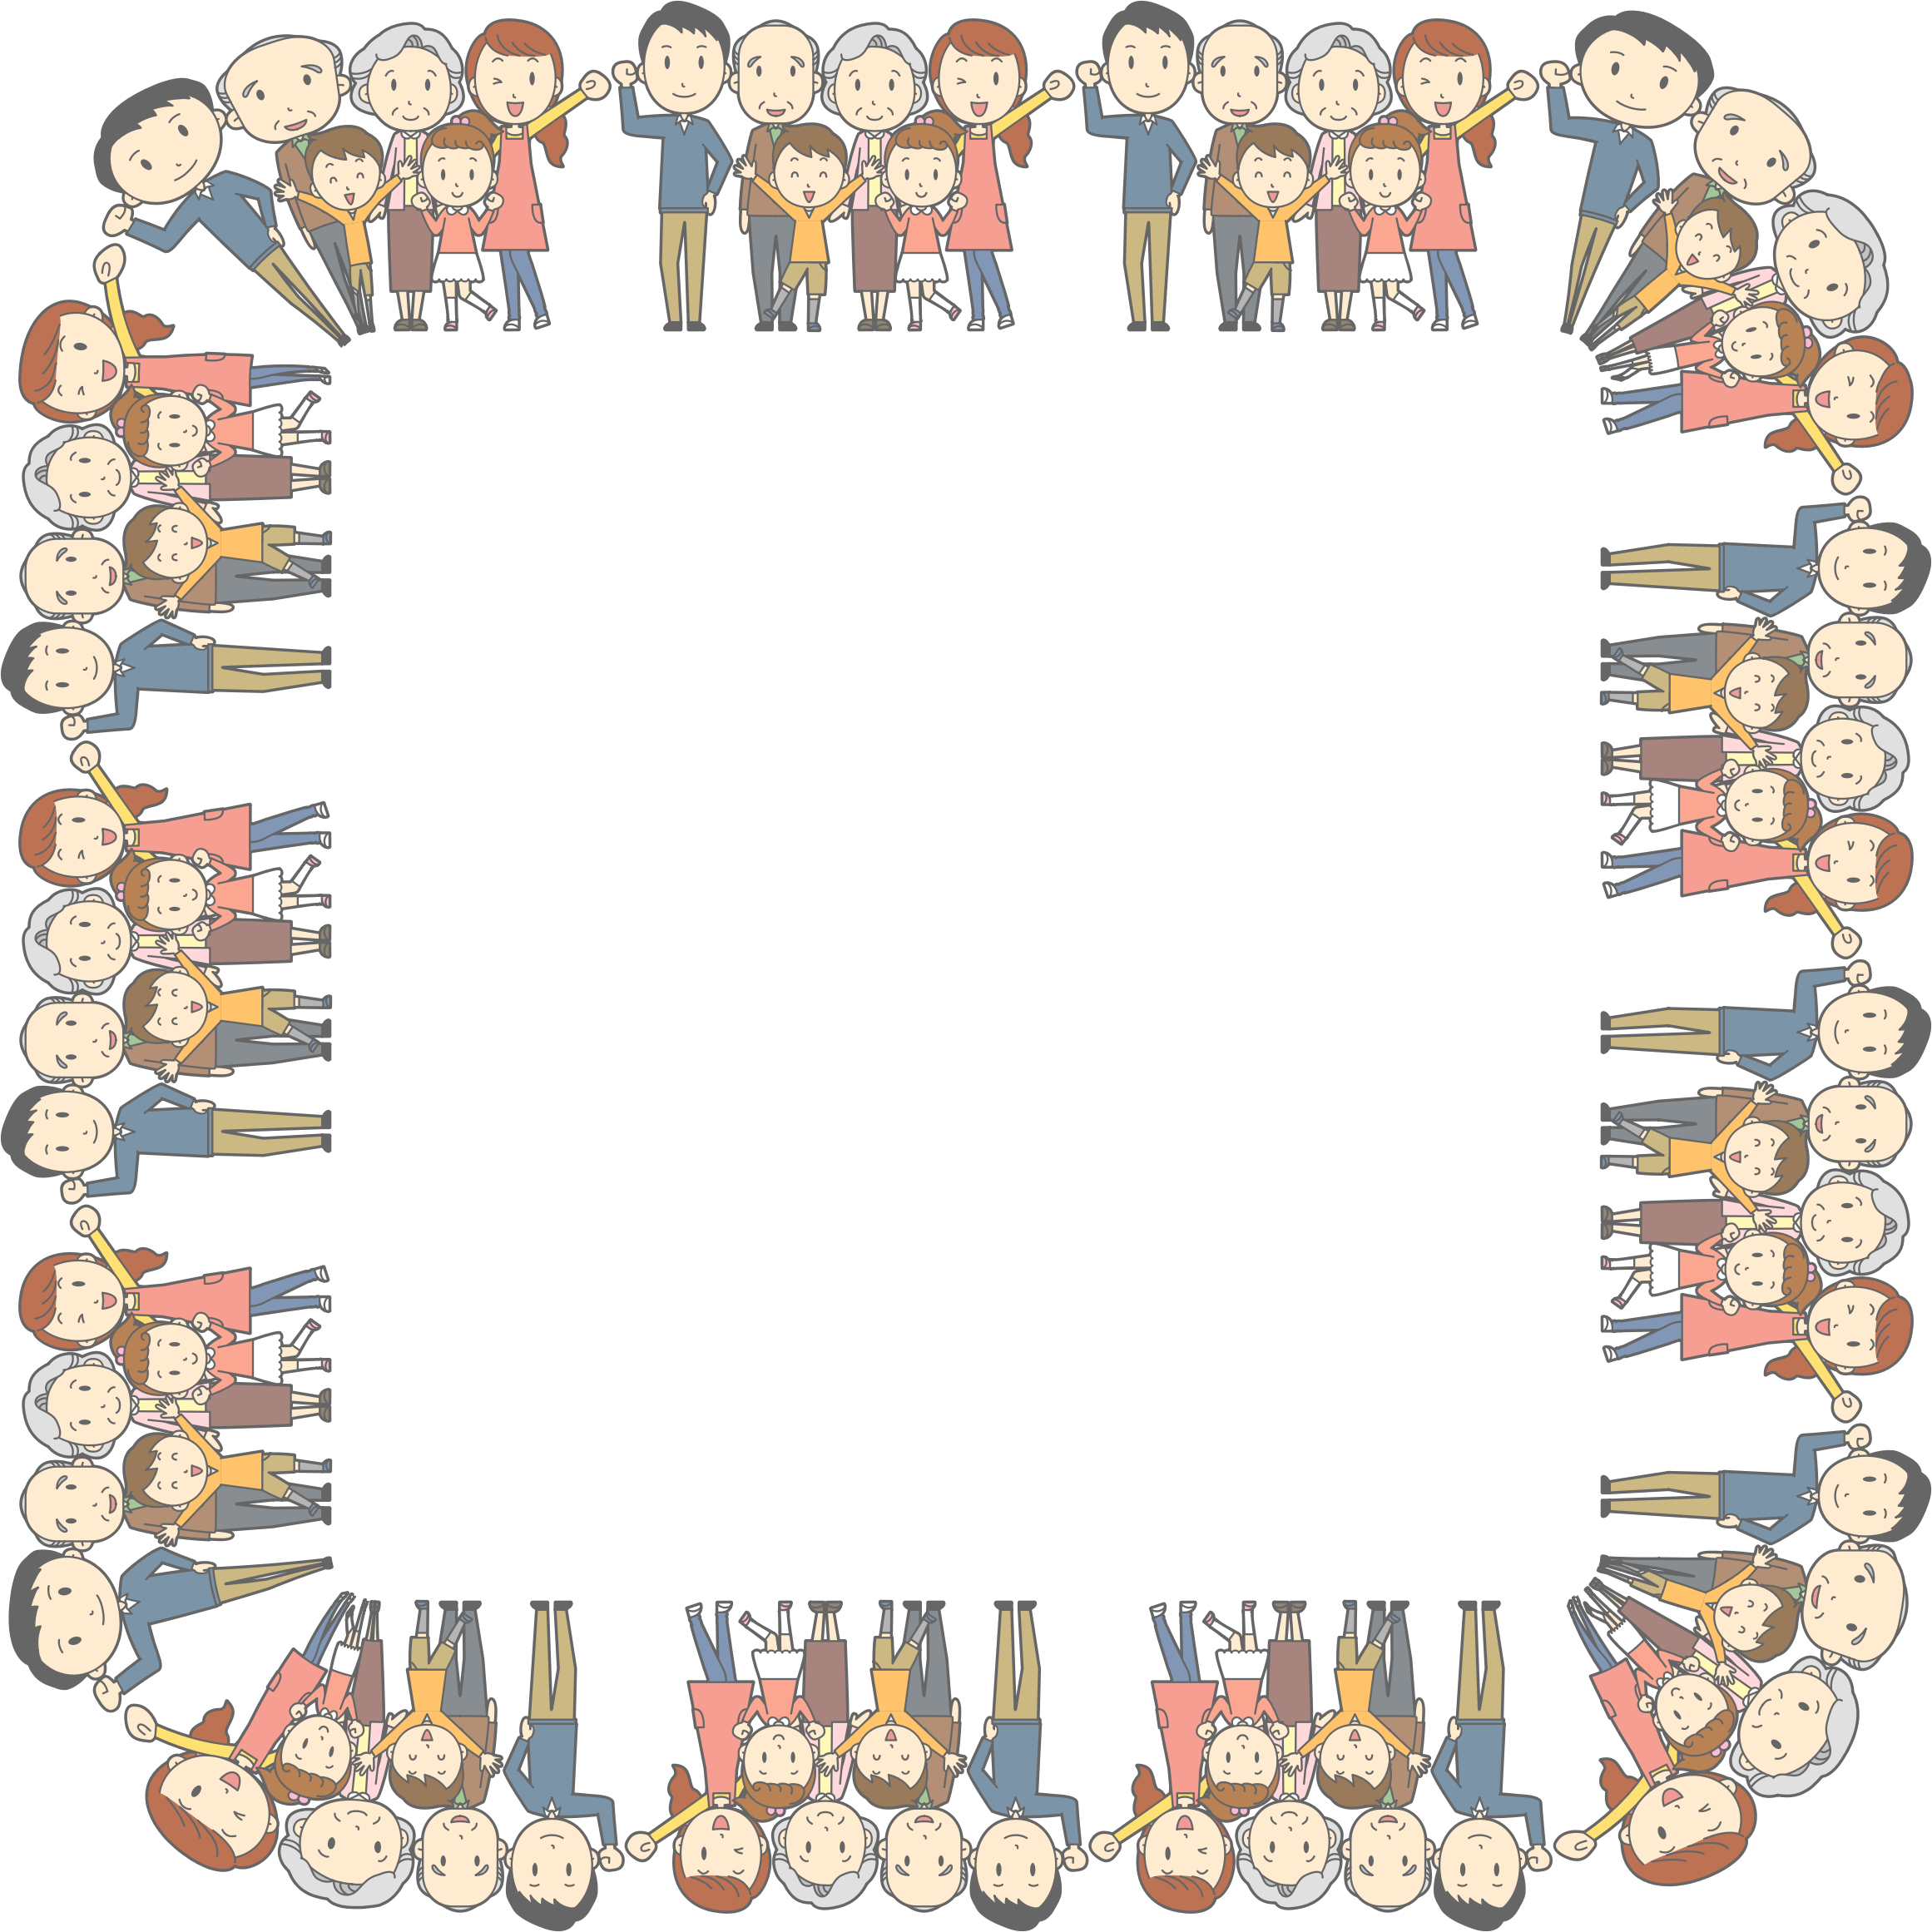 Boarder clipart family. Multigenerational square frame big